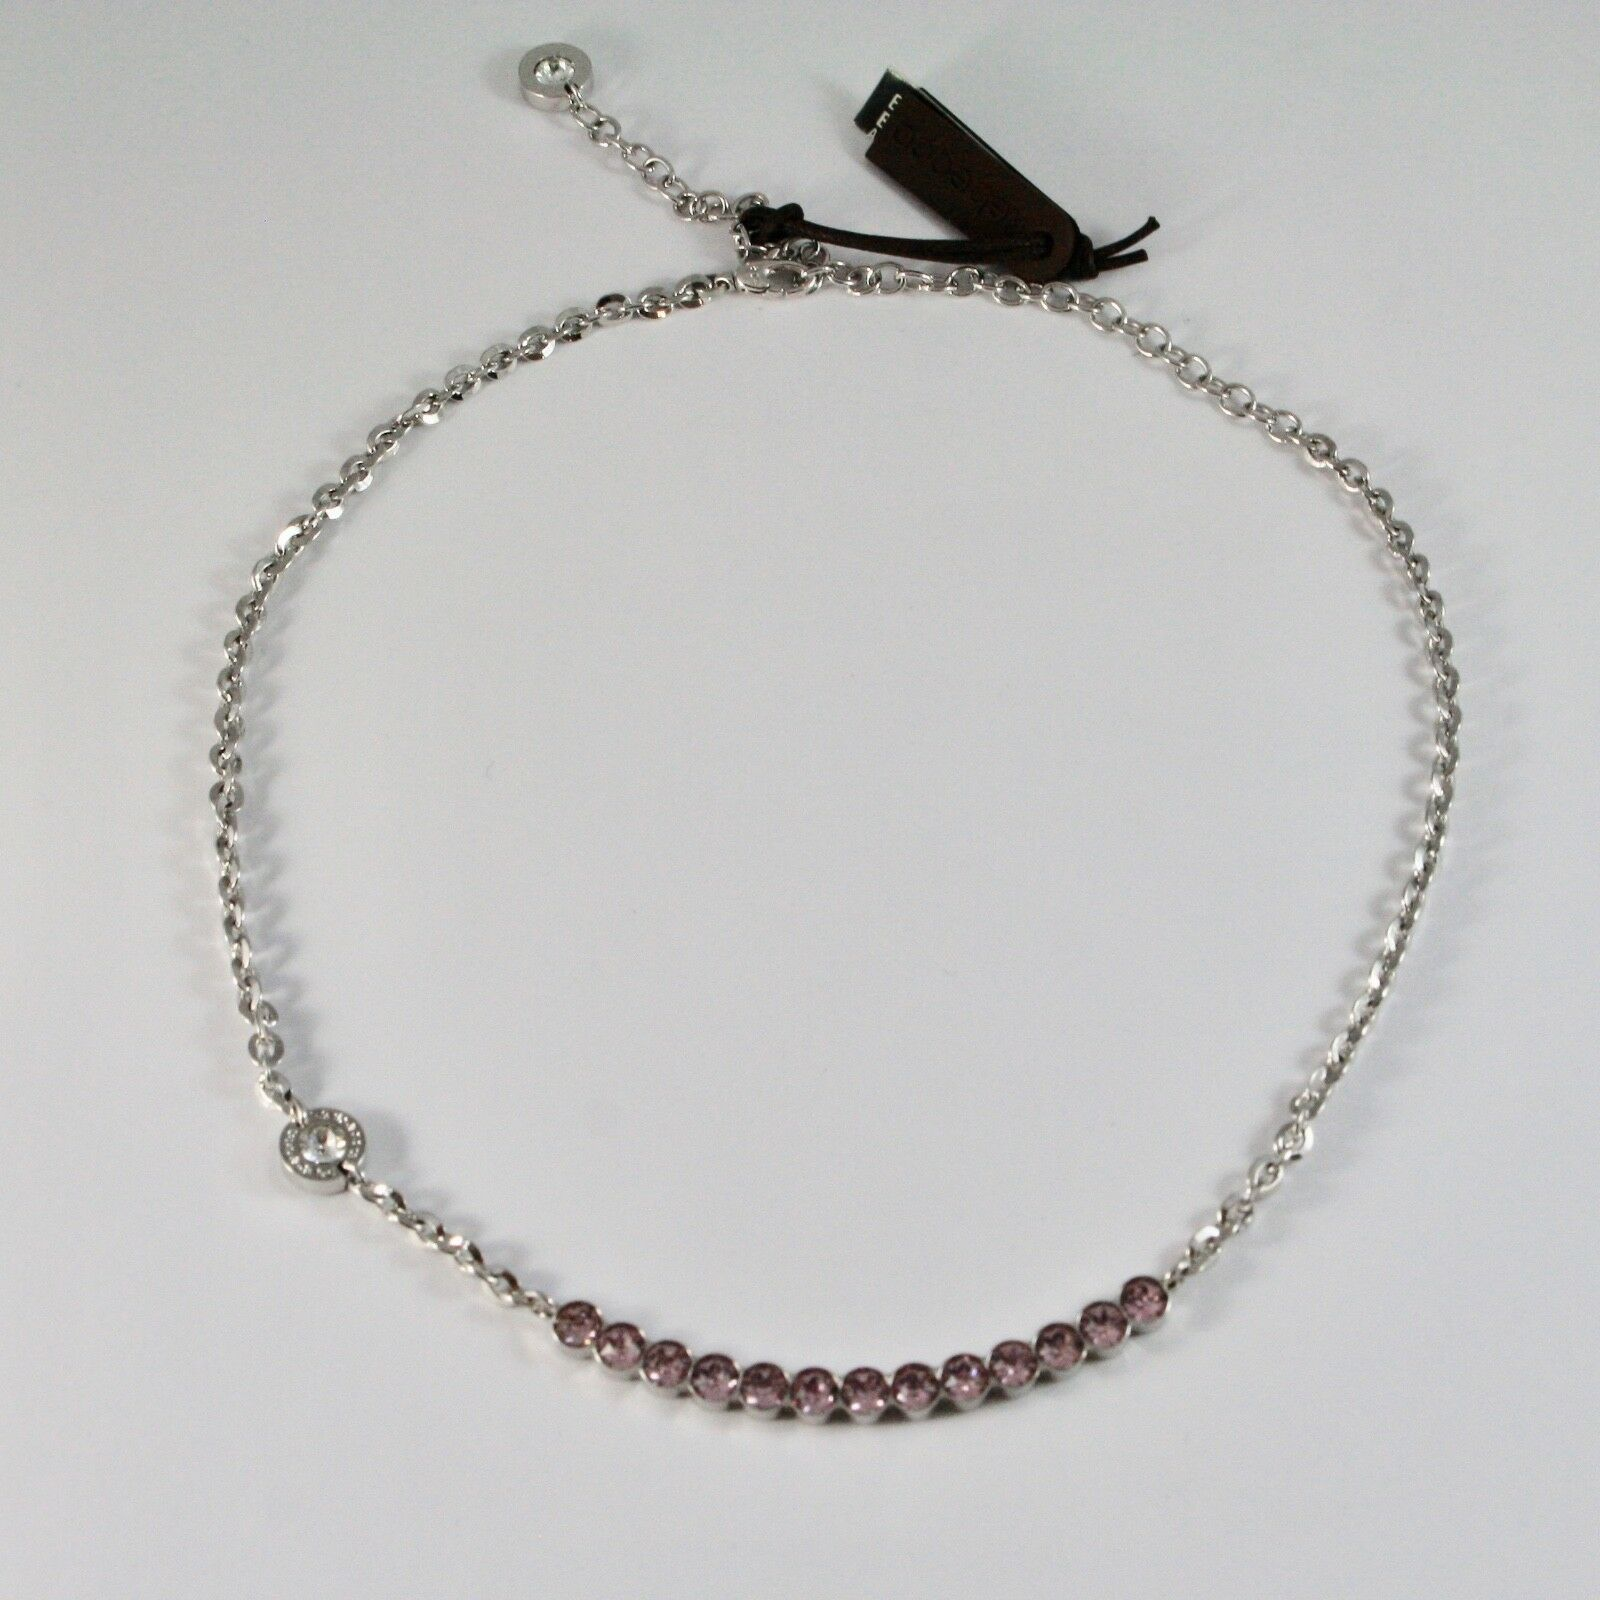 Necklace Rebecca in Bronze with Pink Crystals Diamond Cut BPBKBA14